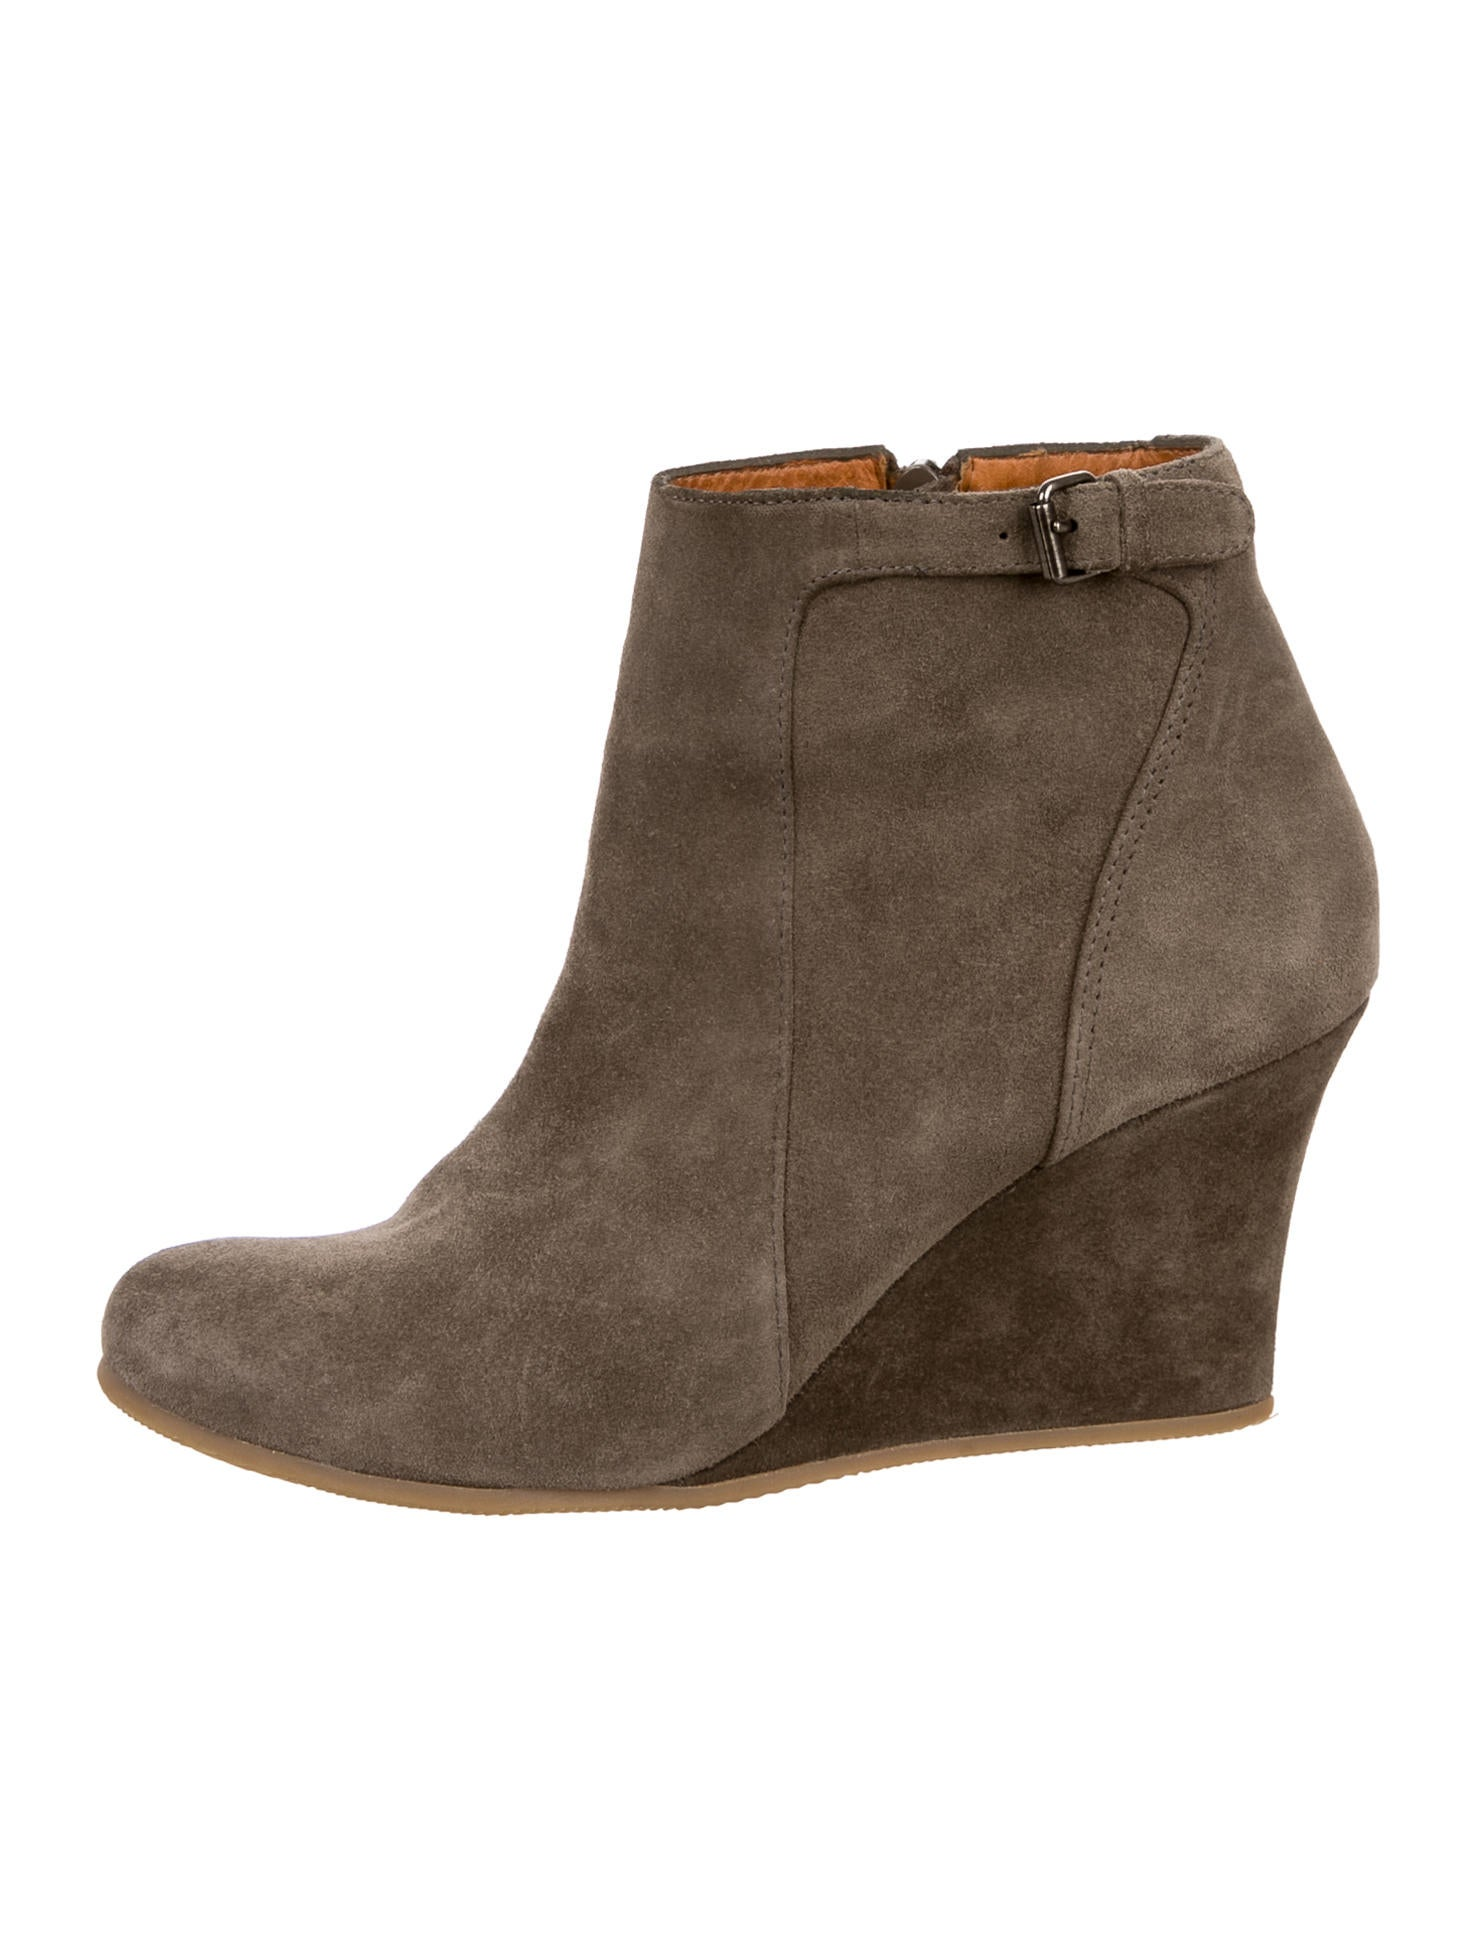 lanvin suede ankle boots shoes lan54900 the realreal